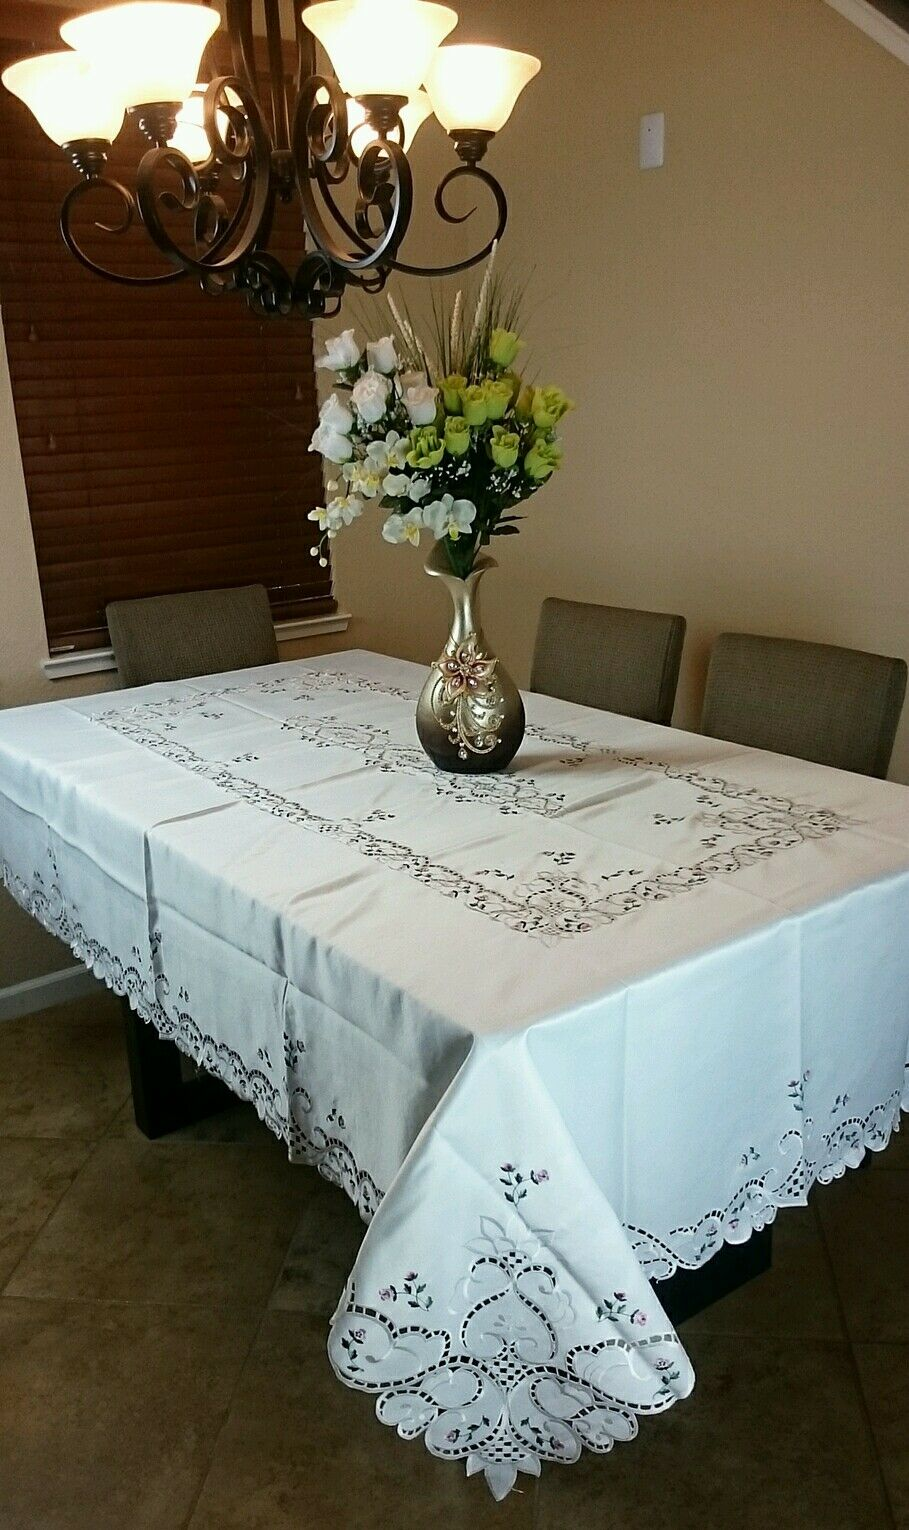 72x144  Embroidery Handmade Rosebud Embroiderouge Tablecloth Napkins Elegant linen